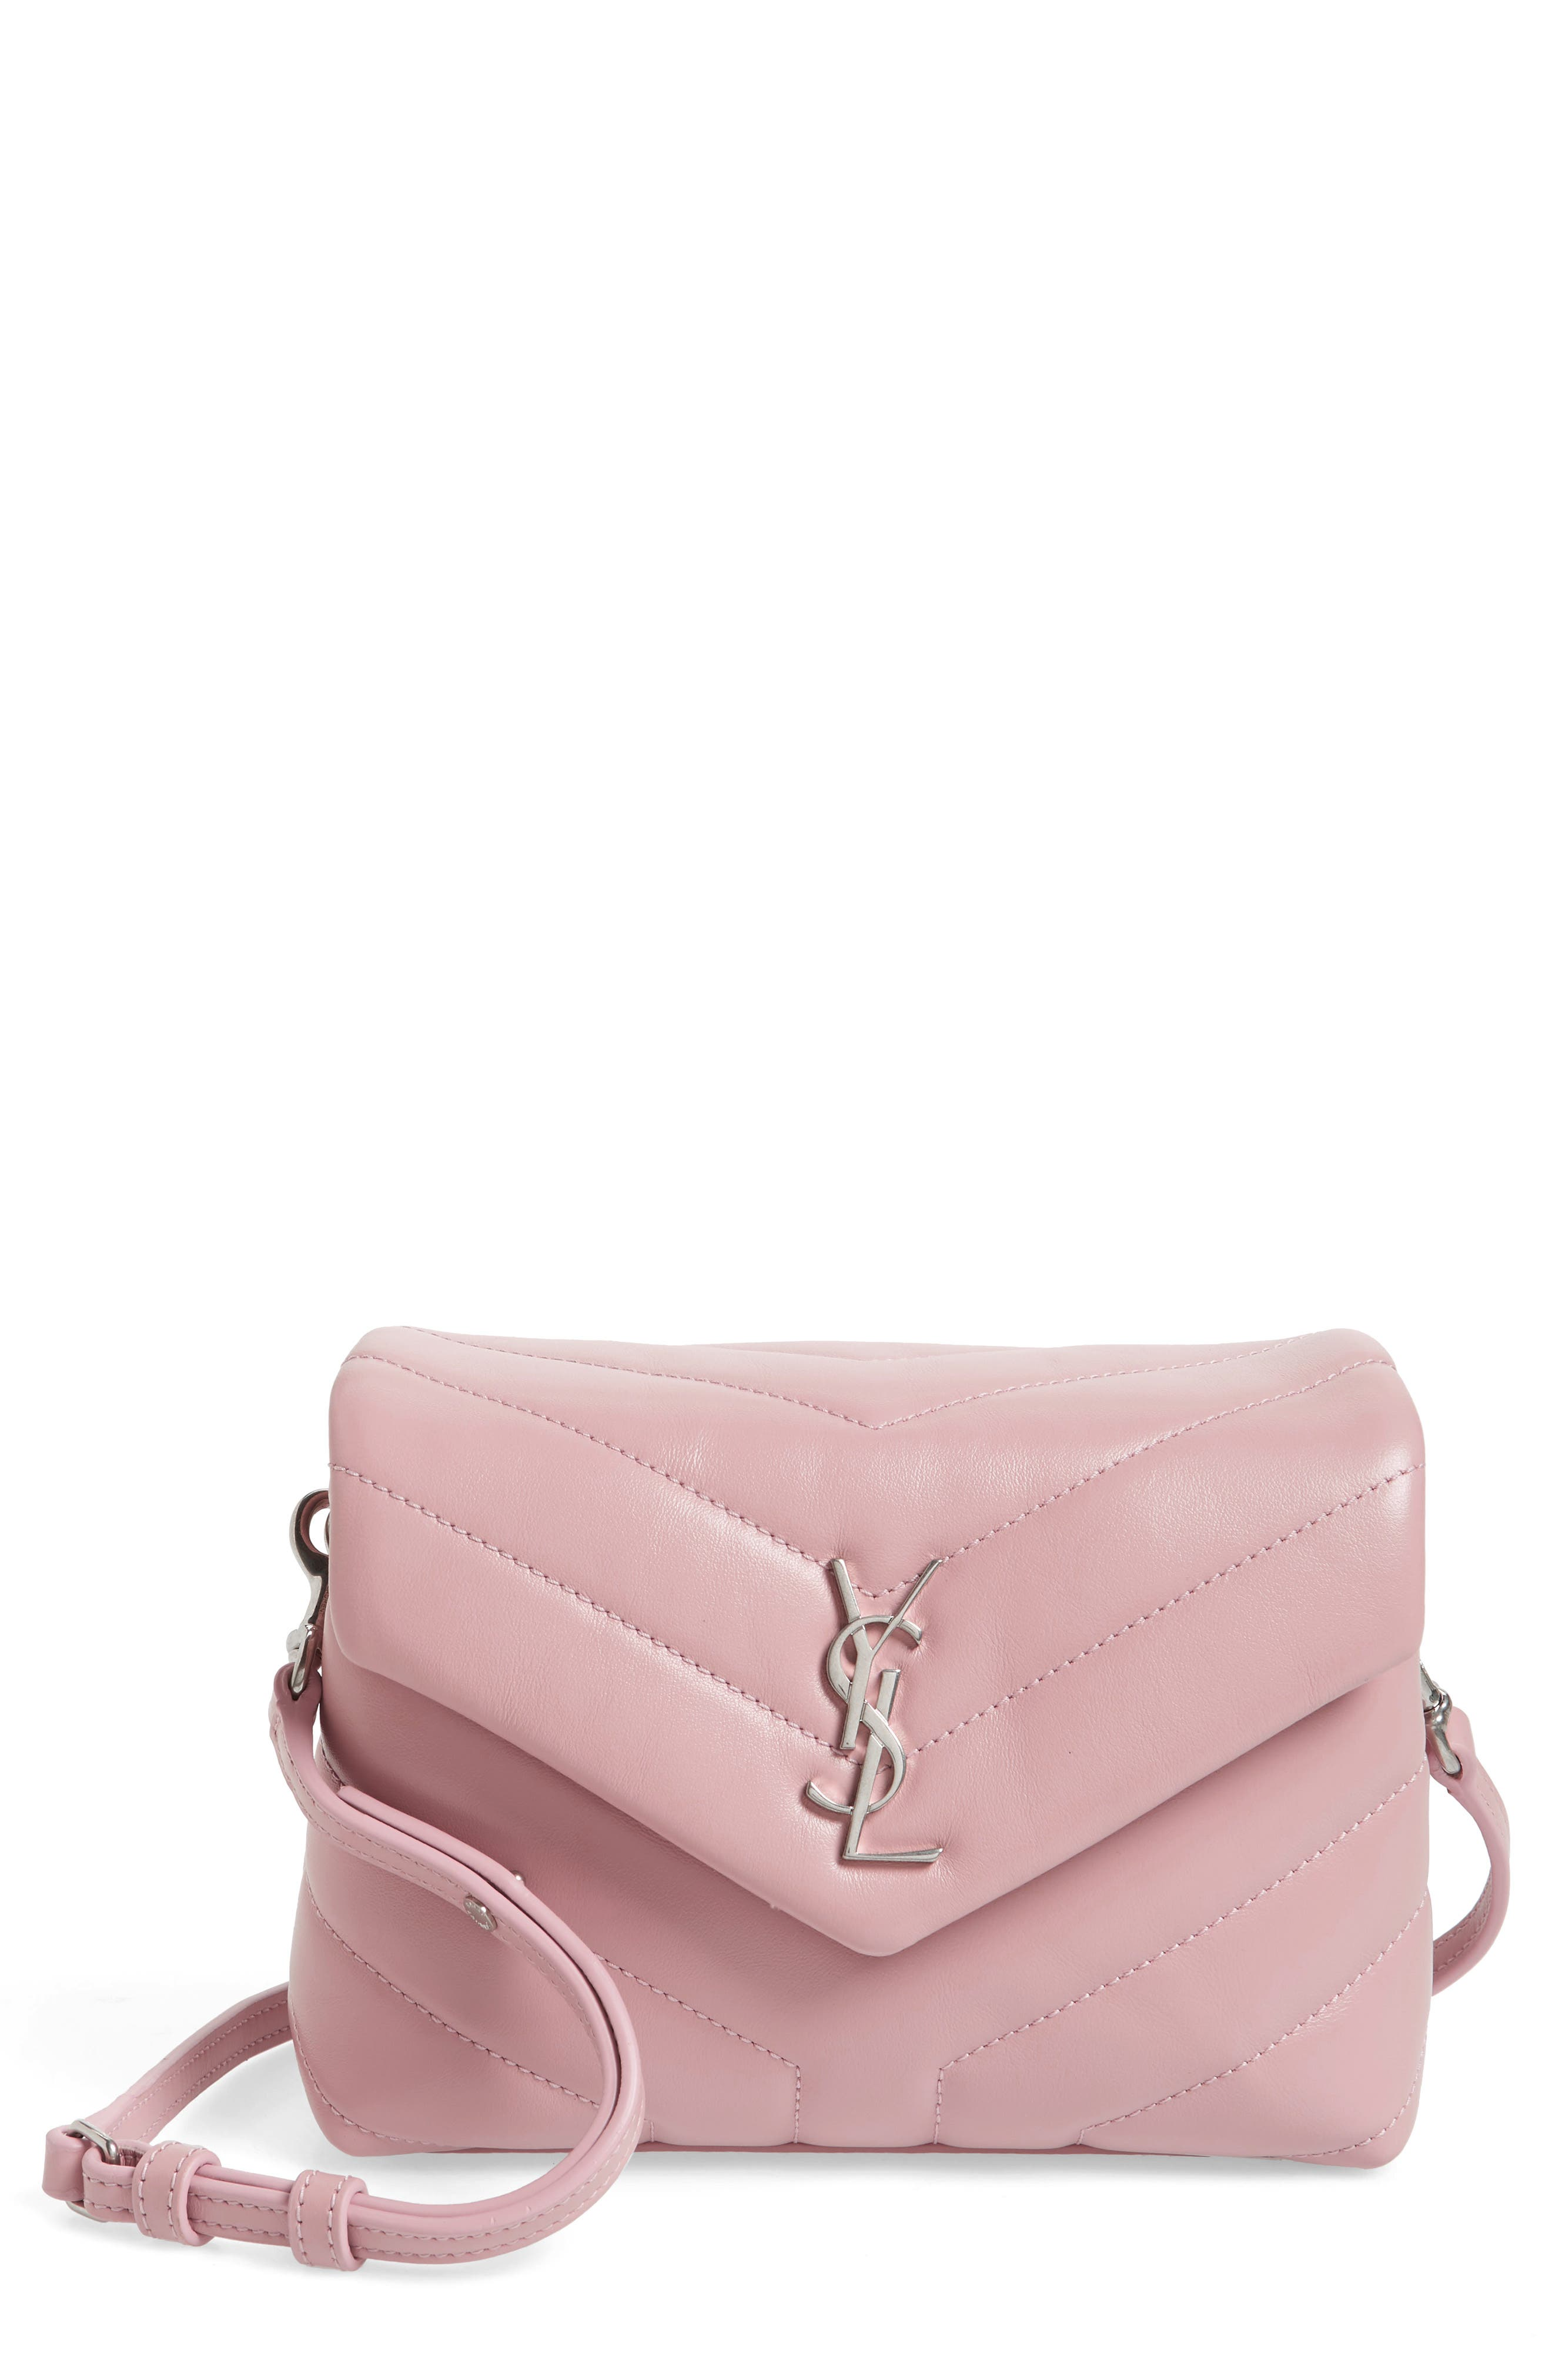 Toy LouLou Calfskin Leather Crossbody Bag,                             Main thumbnail 1, color,                             Tender Pink